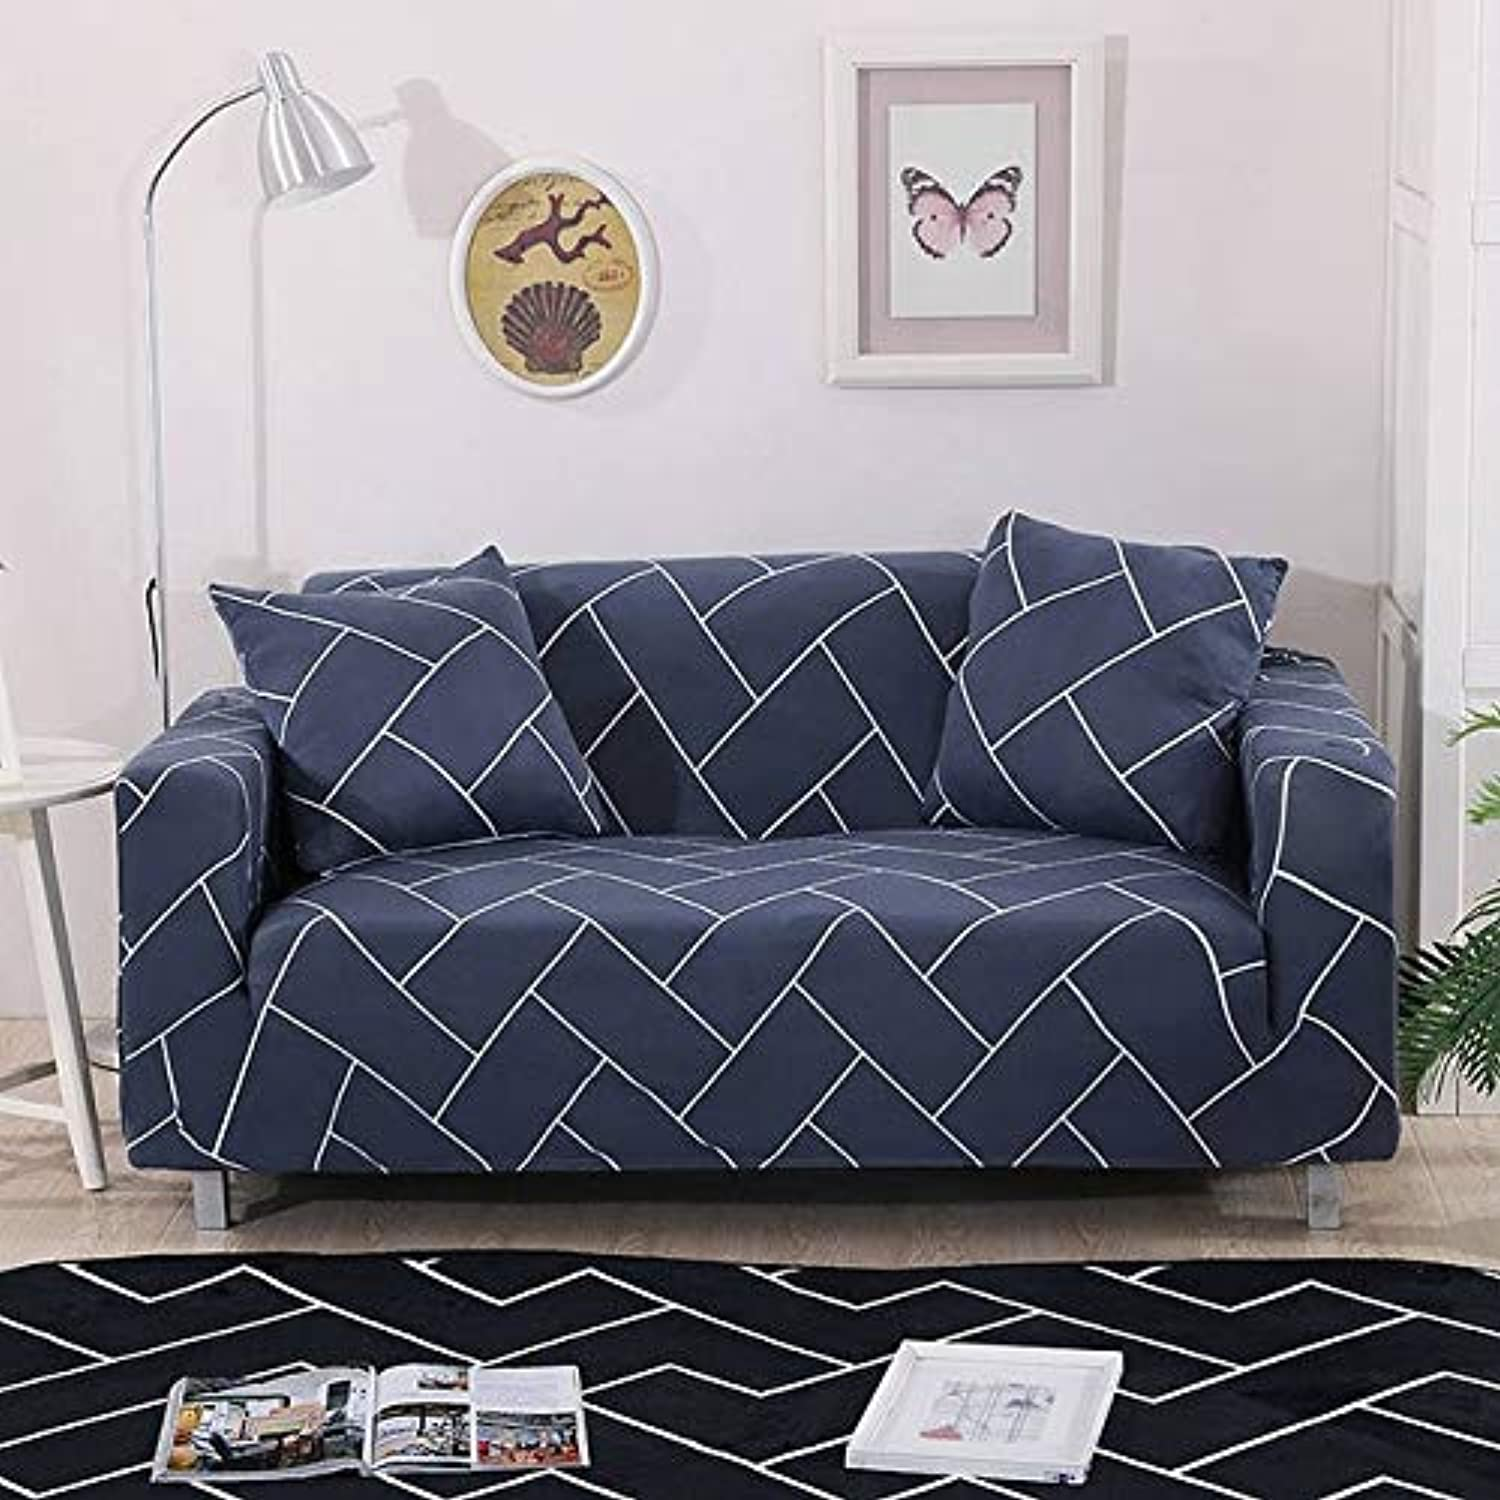 Floral Printing Stretch Slipcovers Elastic Stretch Sofa Cover for Living Room Couch Cover L Shape Armchair Cover   colour17, 2-Seater 145-185cm